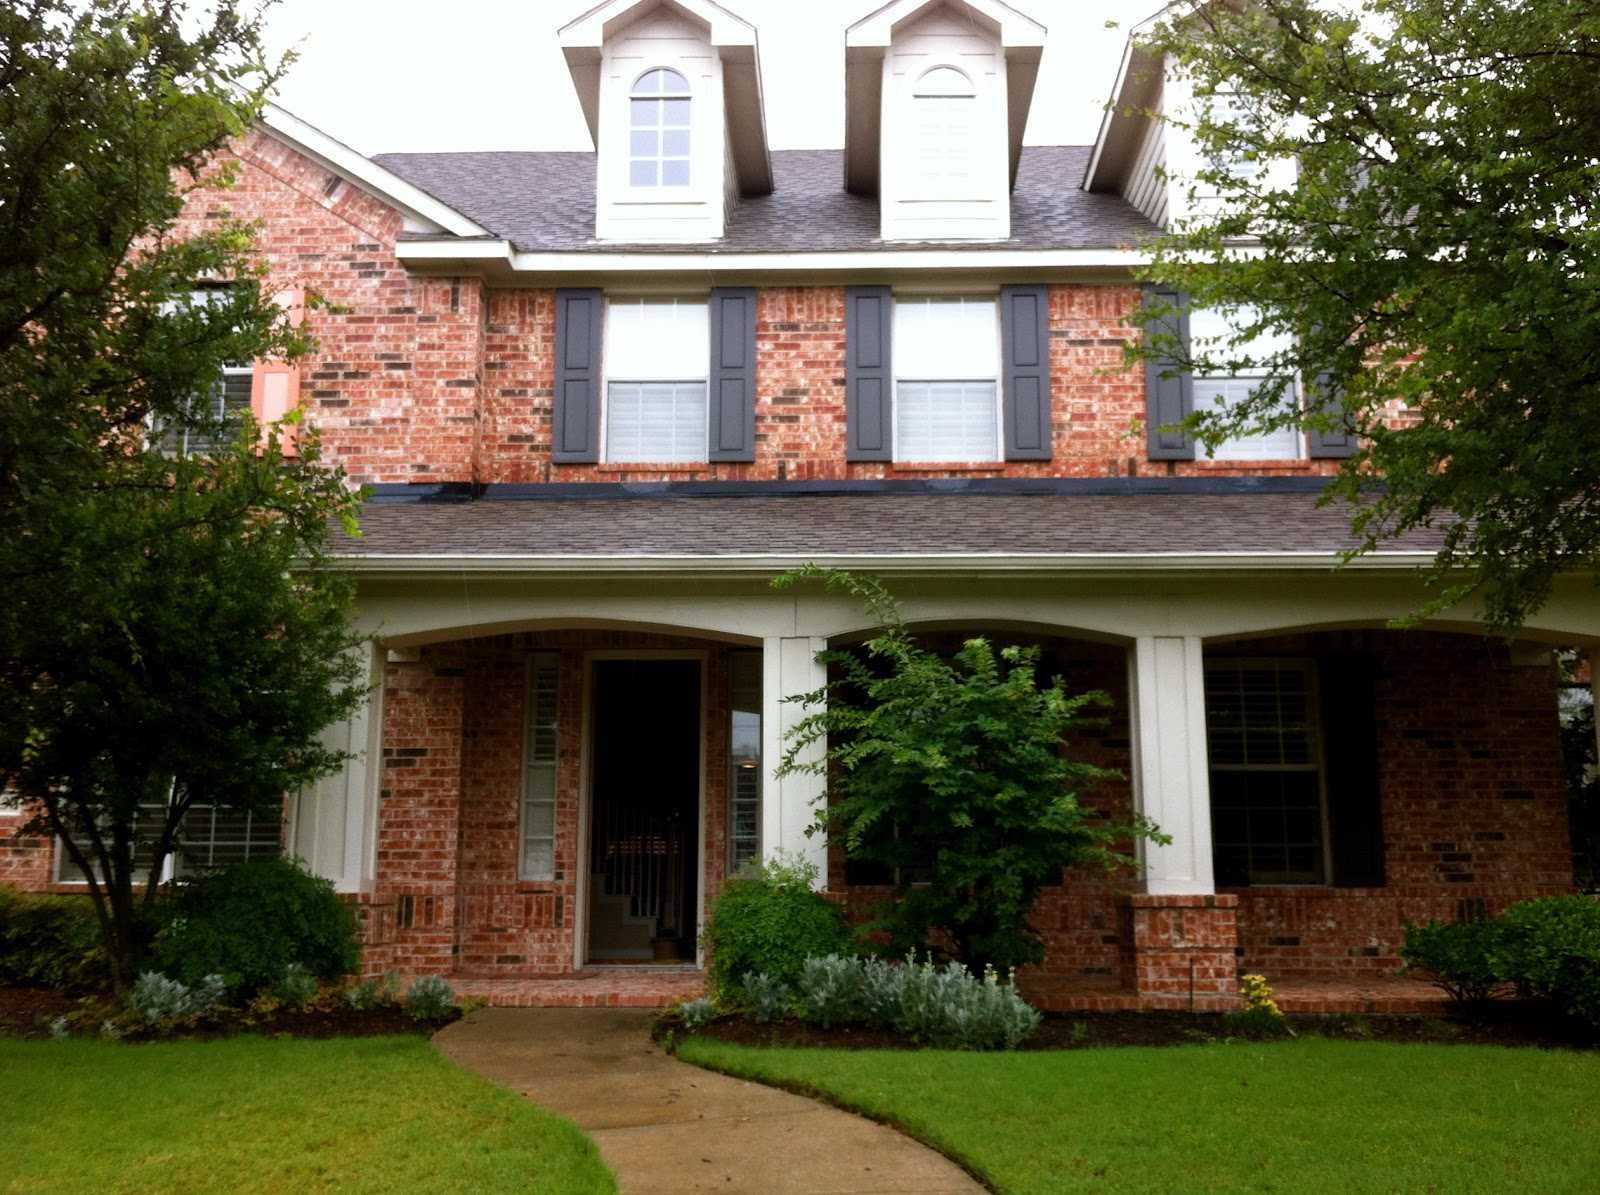 How To Buy A House With No Money Down Are Home Warranties Worth It? Pt  Money